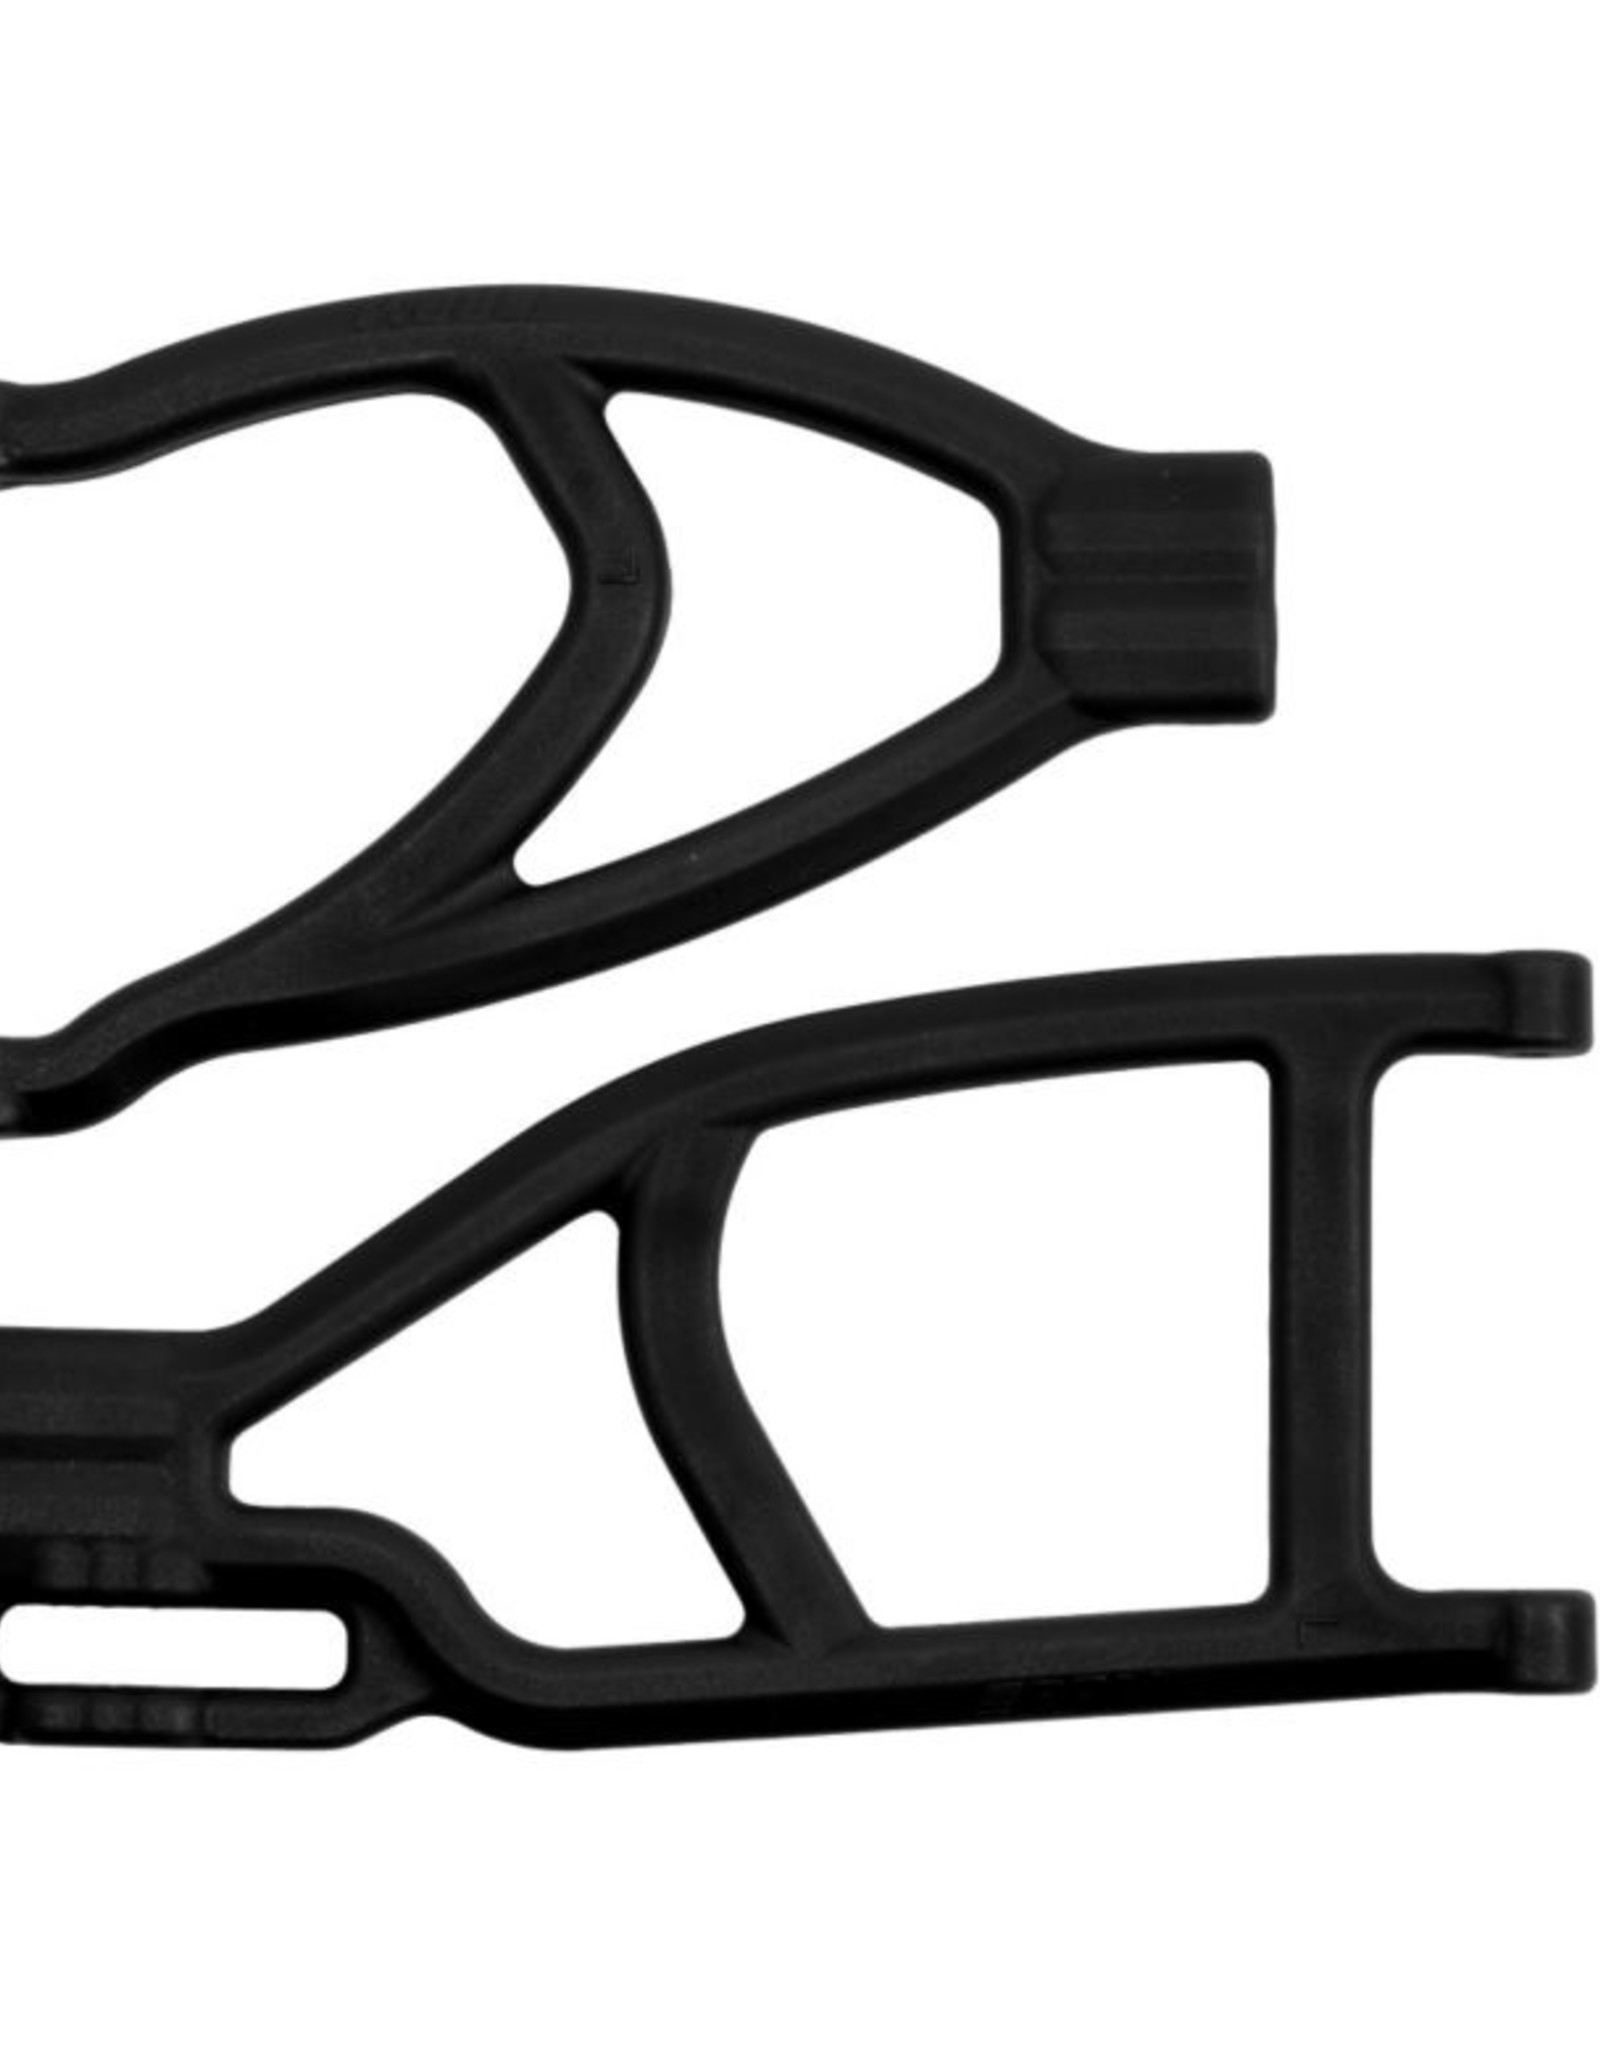 RPM RPM Extended* Left Rear A-arms for the Summit, Revo & E-Revo BLK